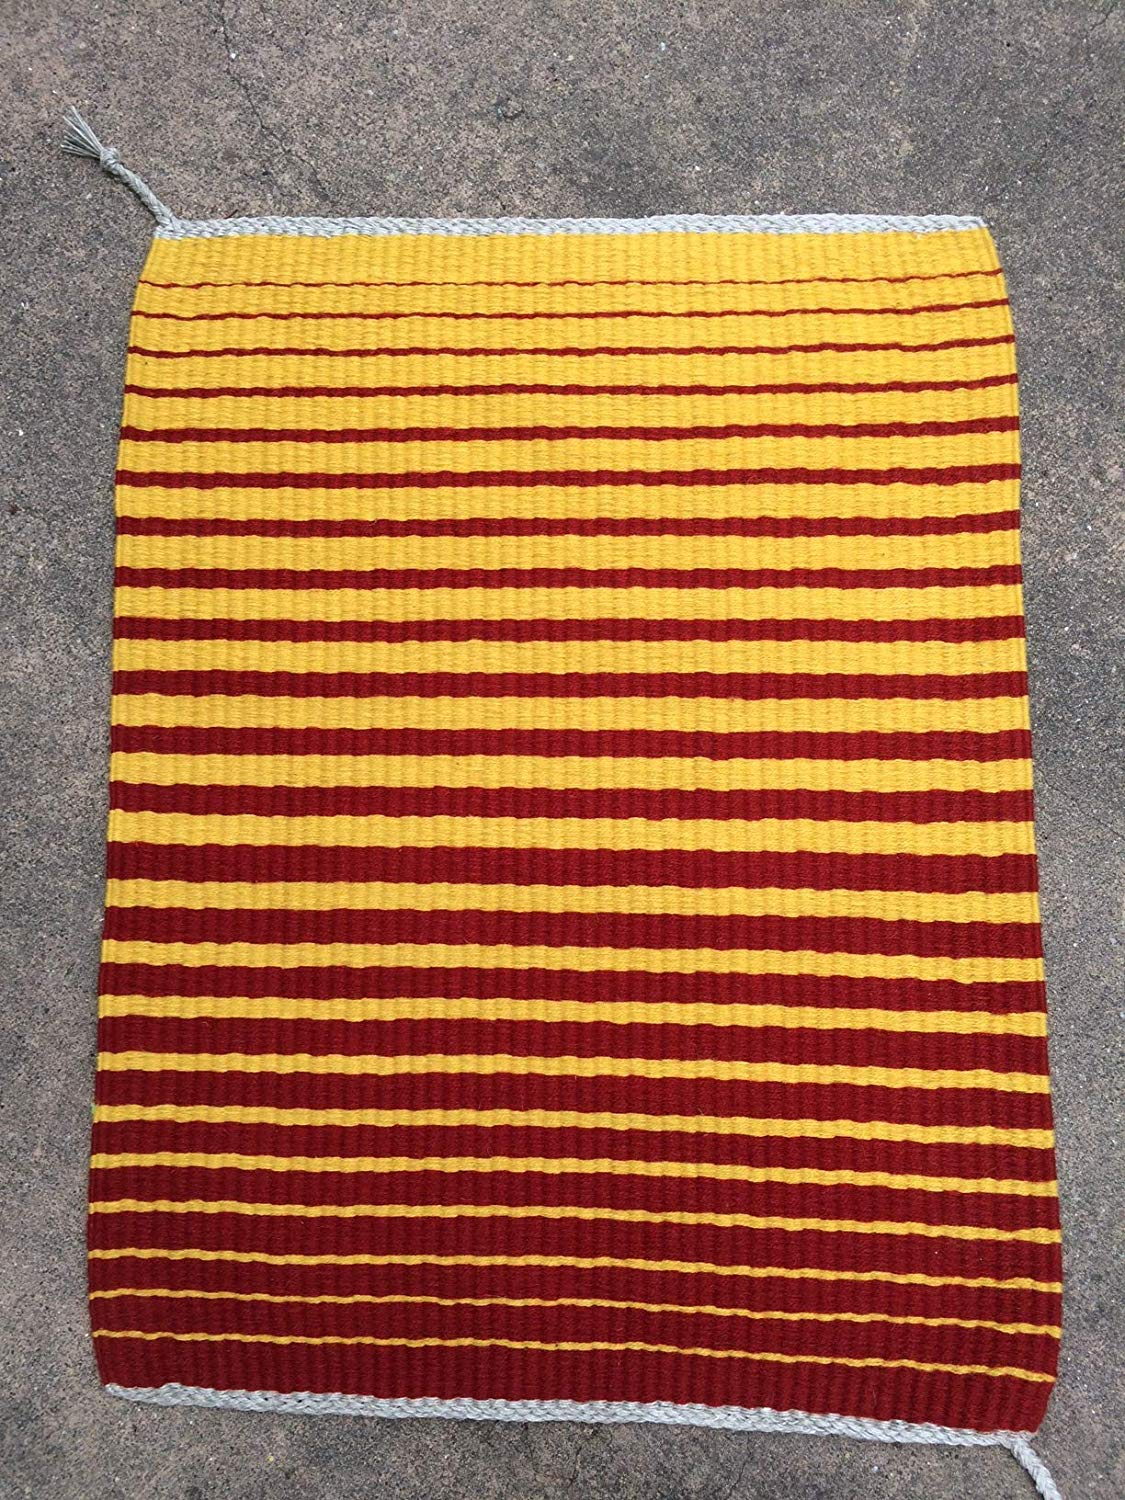 Red Yellow Rug Find Deals On Line At